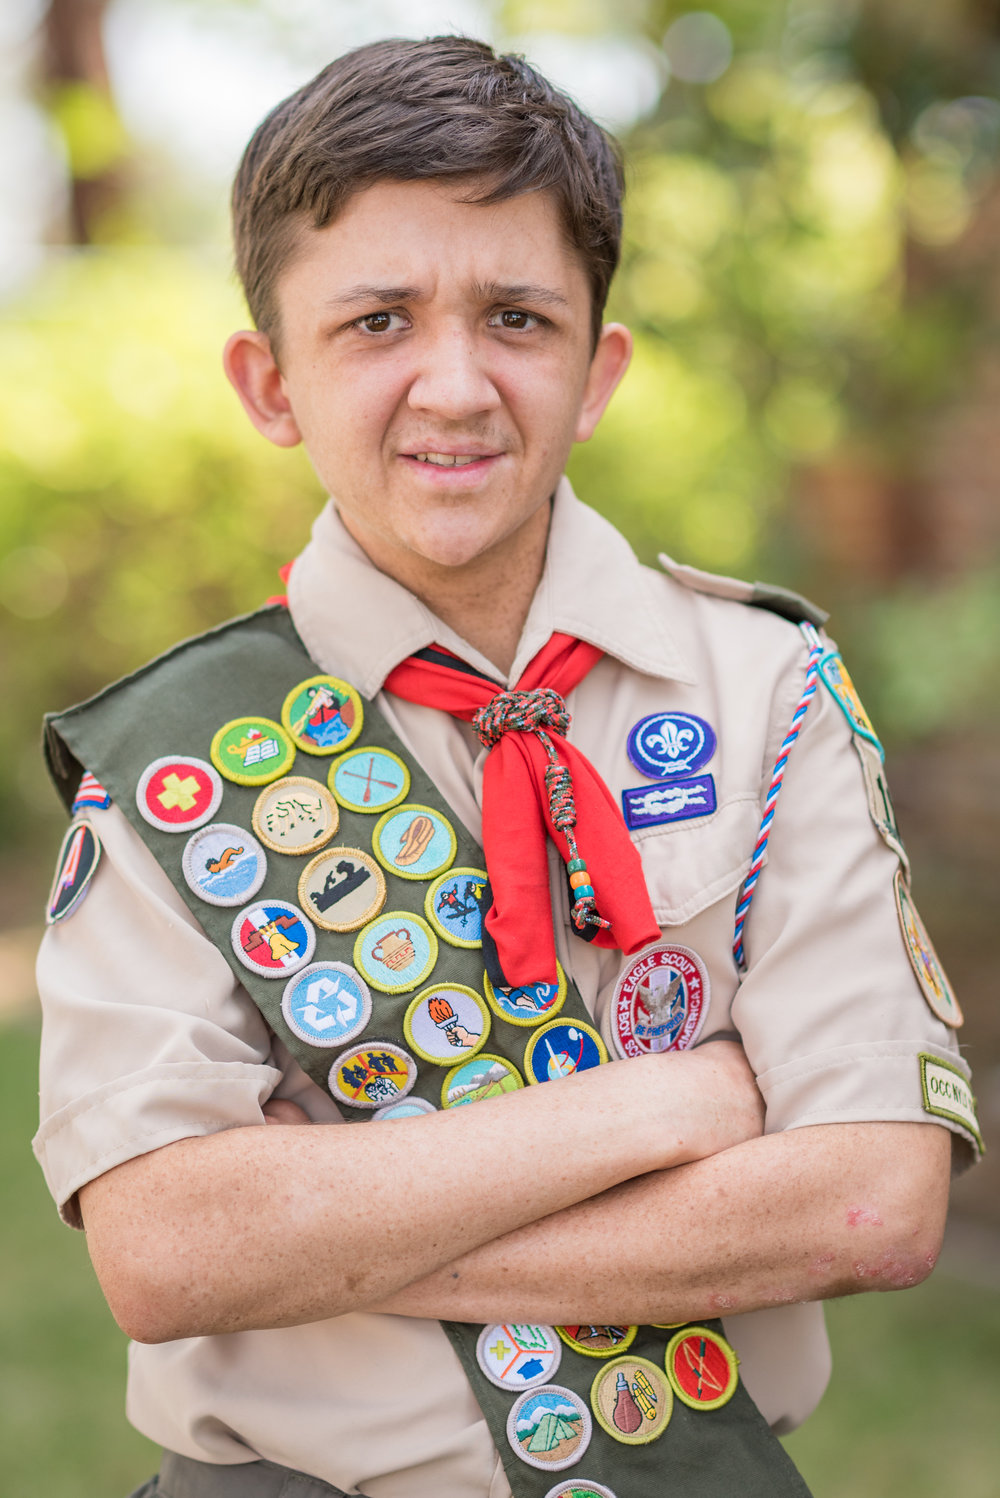 2016_March_19-eagle_scout_ceremony_fullerton_1-17541.jpg